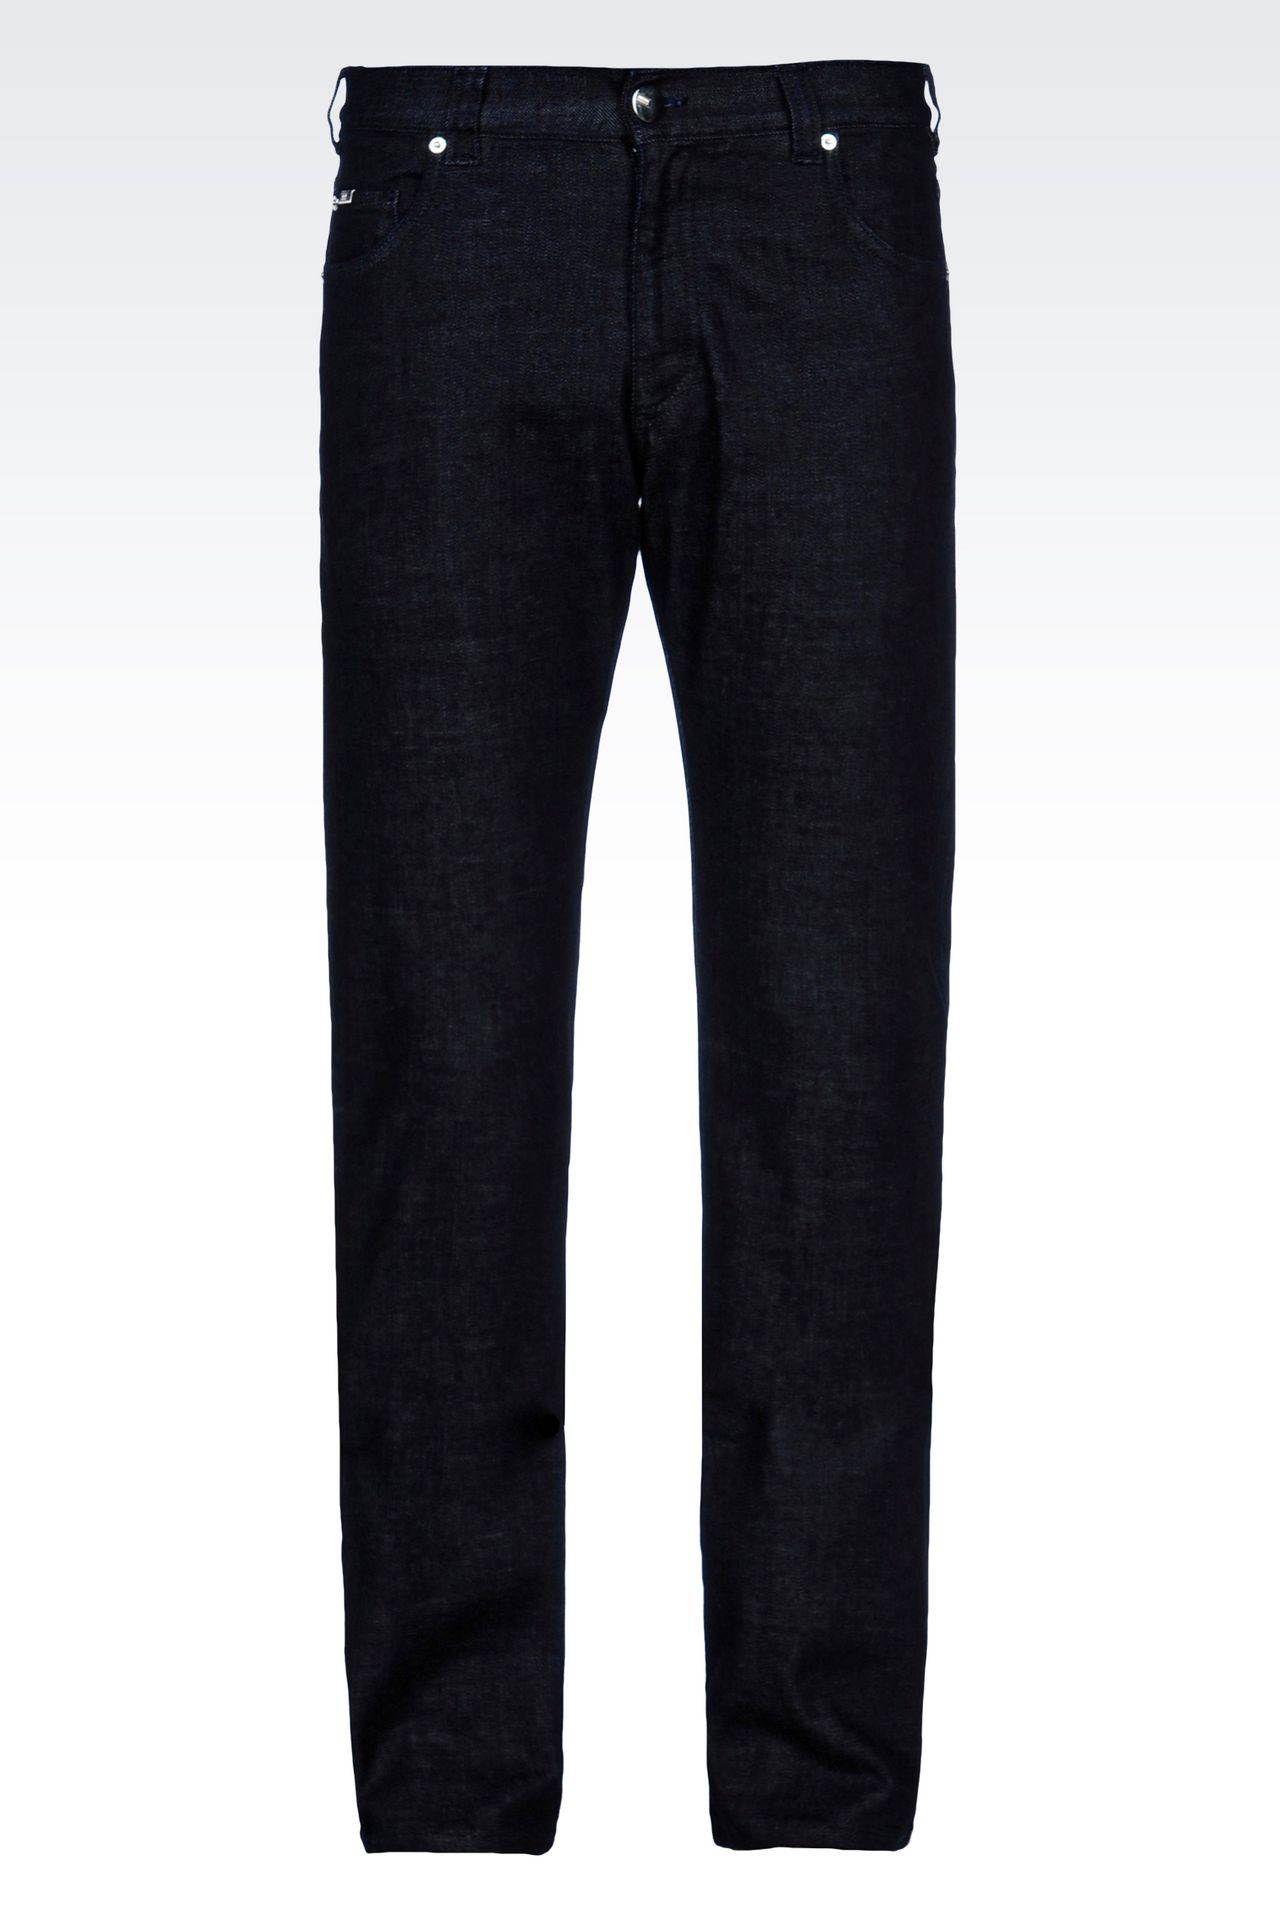 Black Jeans Slim Fit Men - Xtellar Jeans